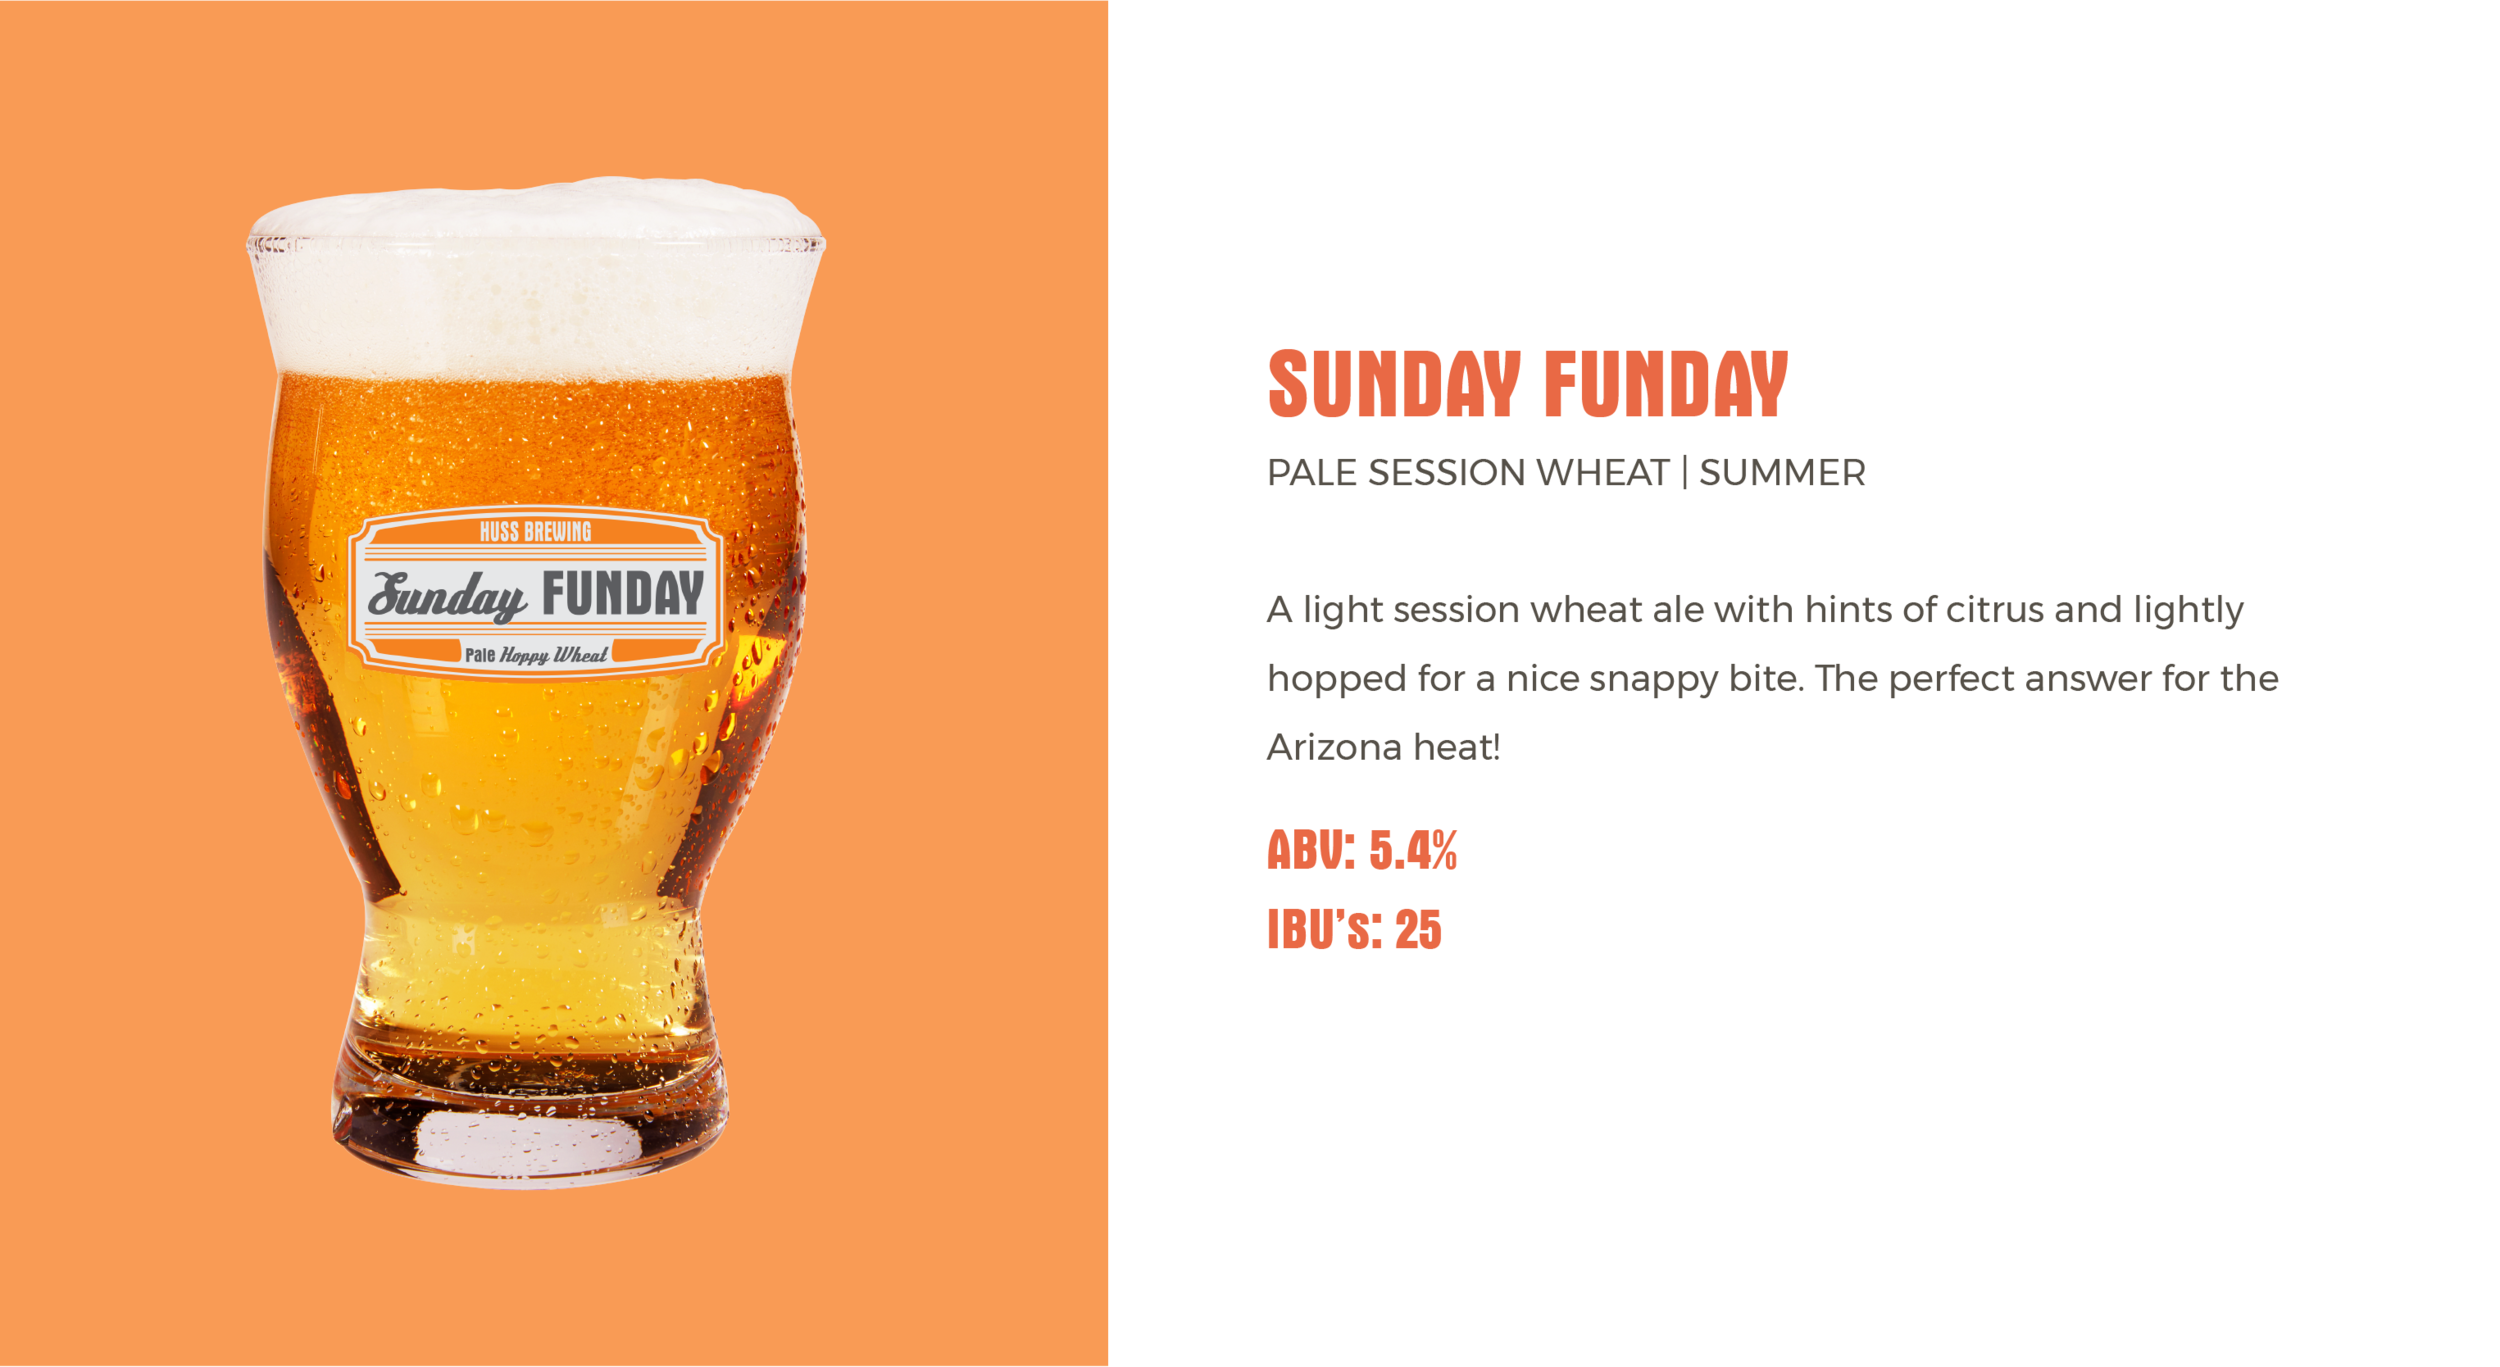 Huss Brewing Co Sunday Funday